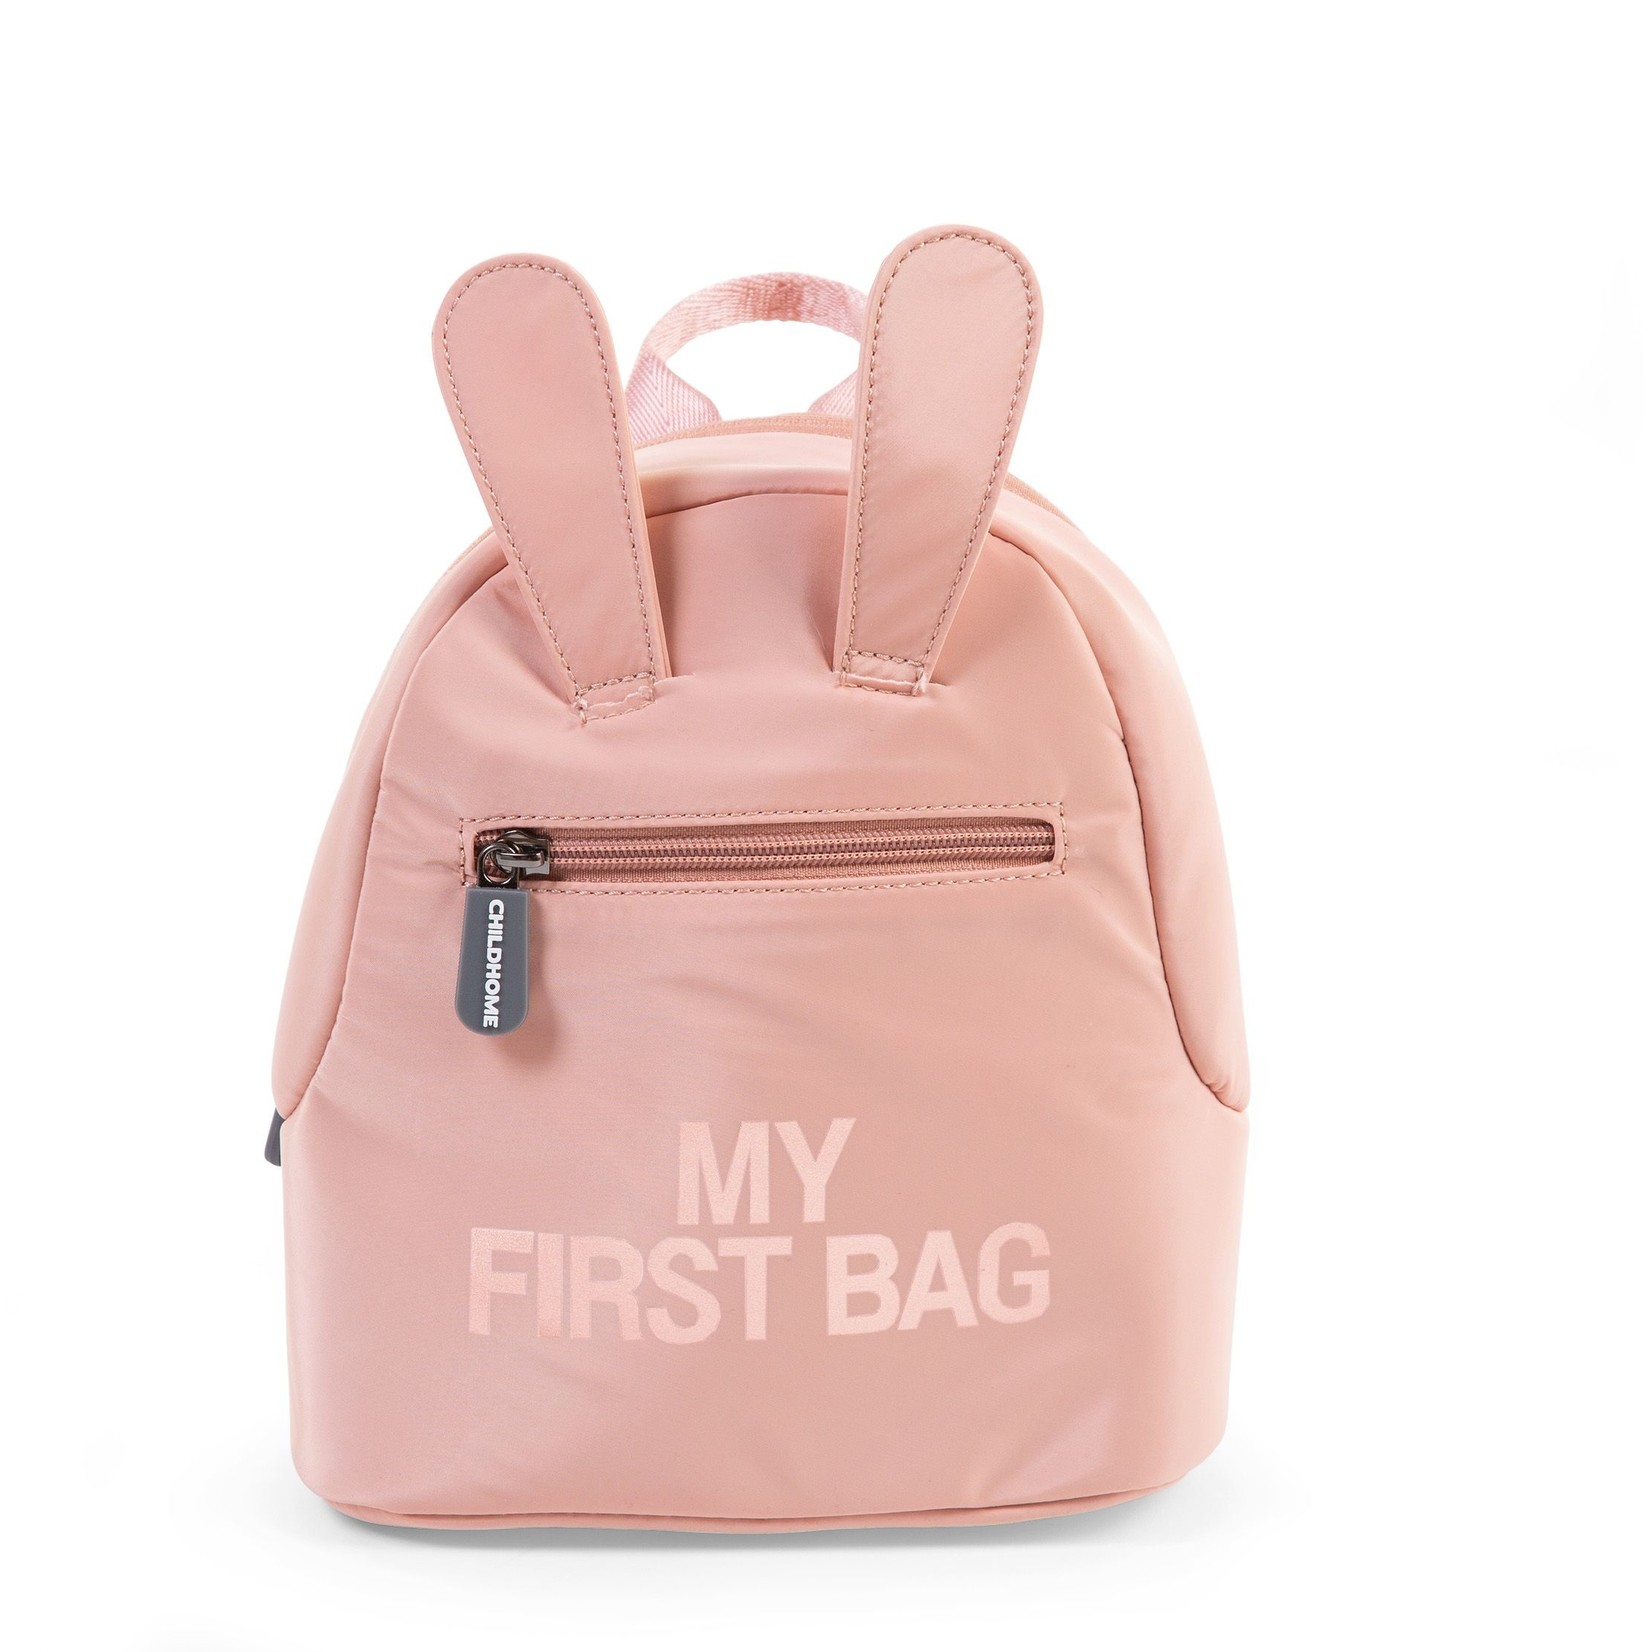 Childhome My first bag kinderrugzak roze koper